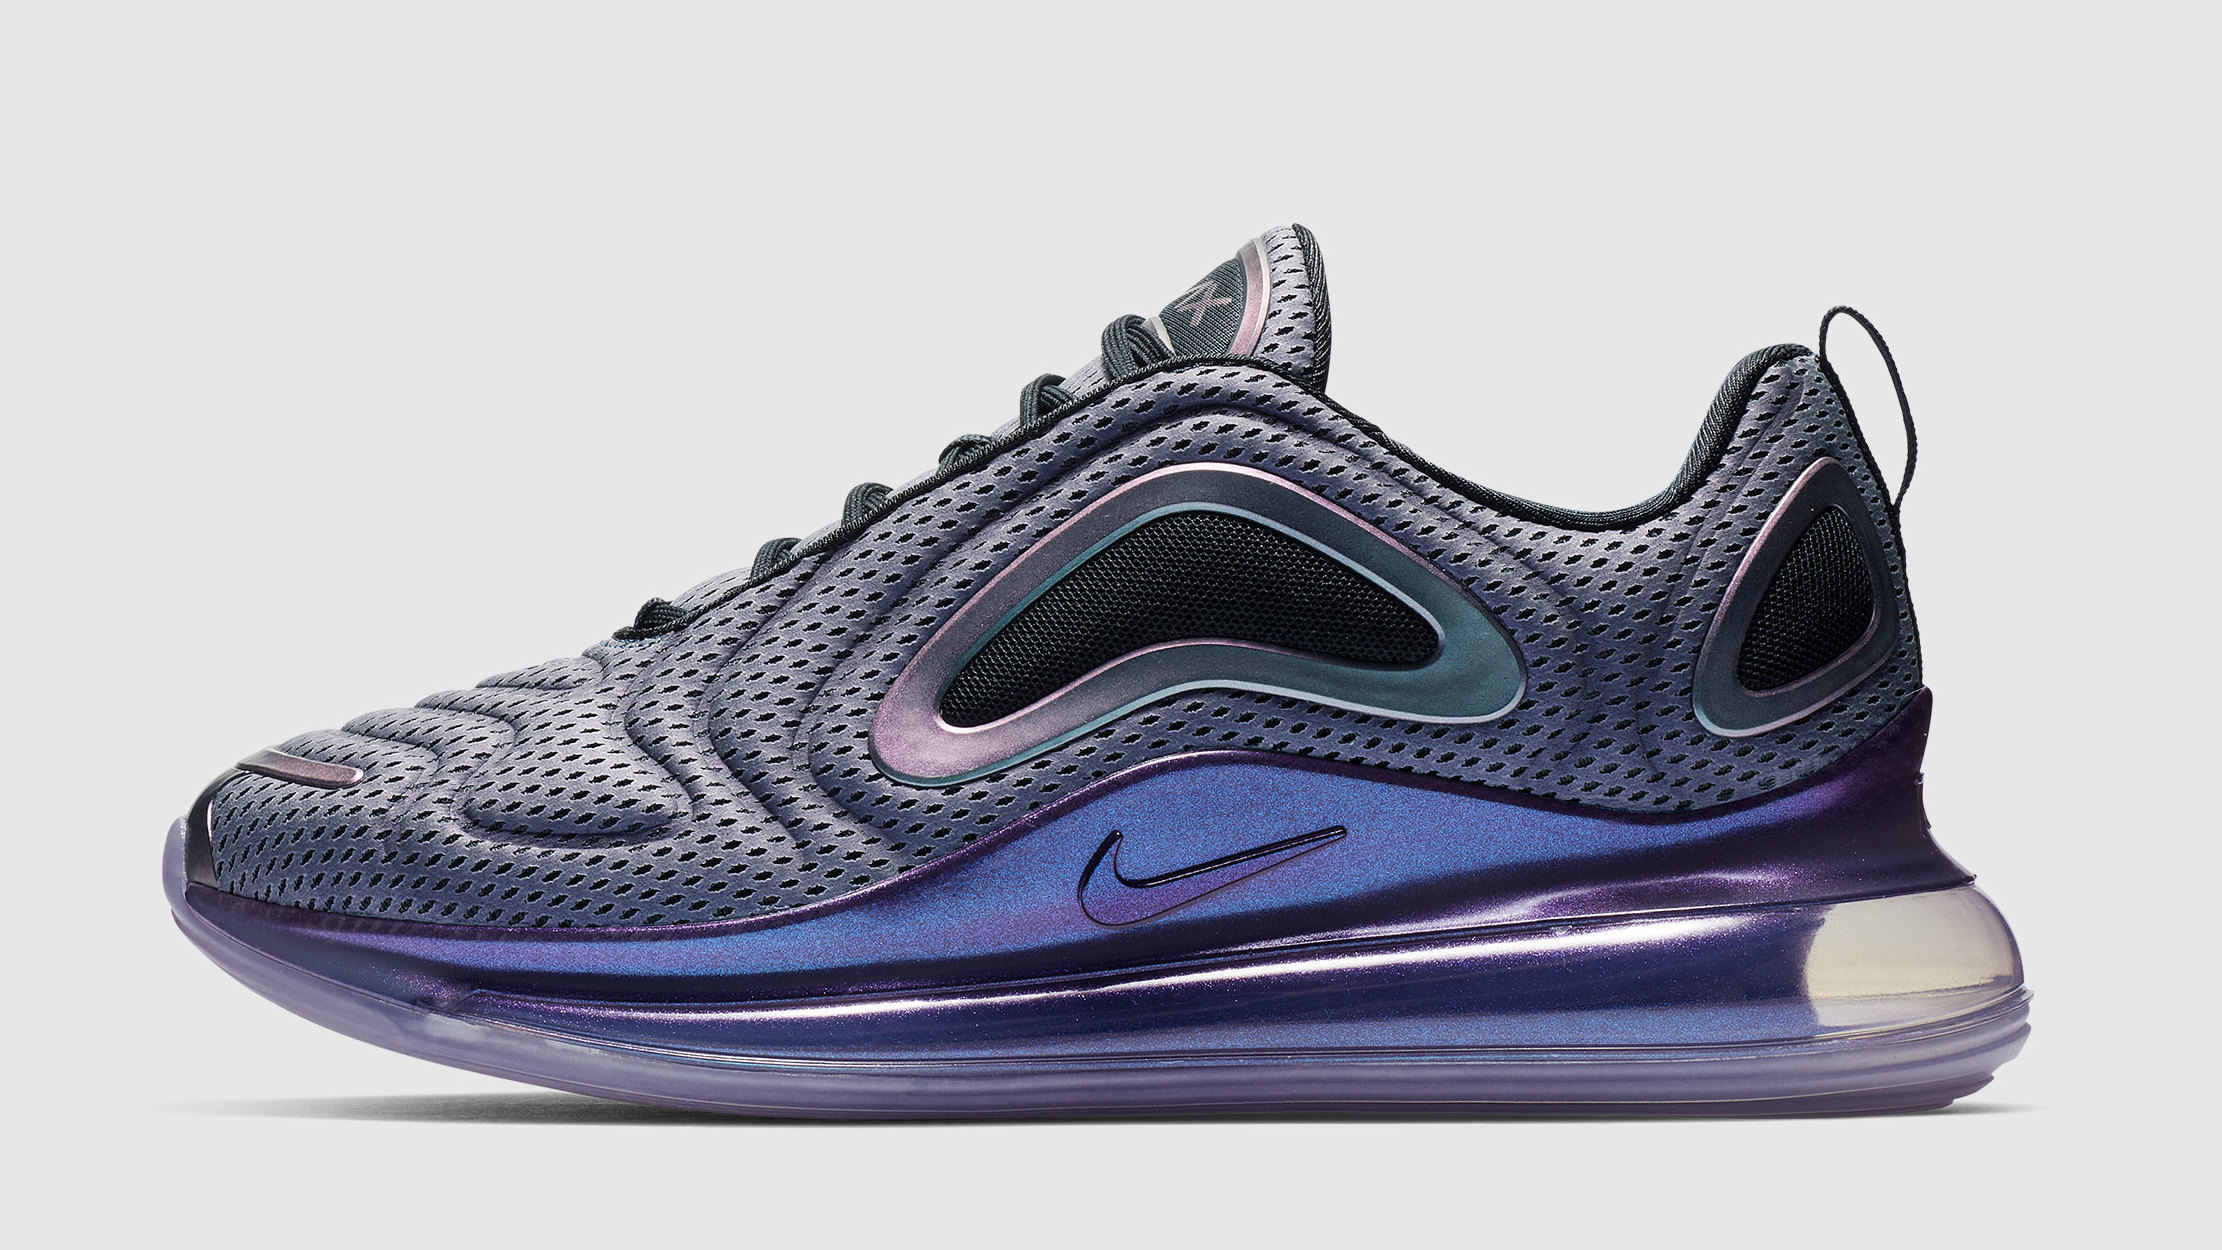 new arrivals 0bee6 46385 Nike Air Max 720 Launch Colorways Release Date   Sole Collector